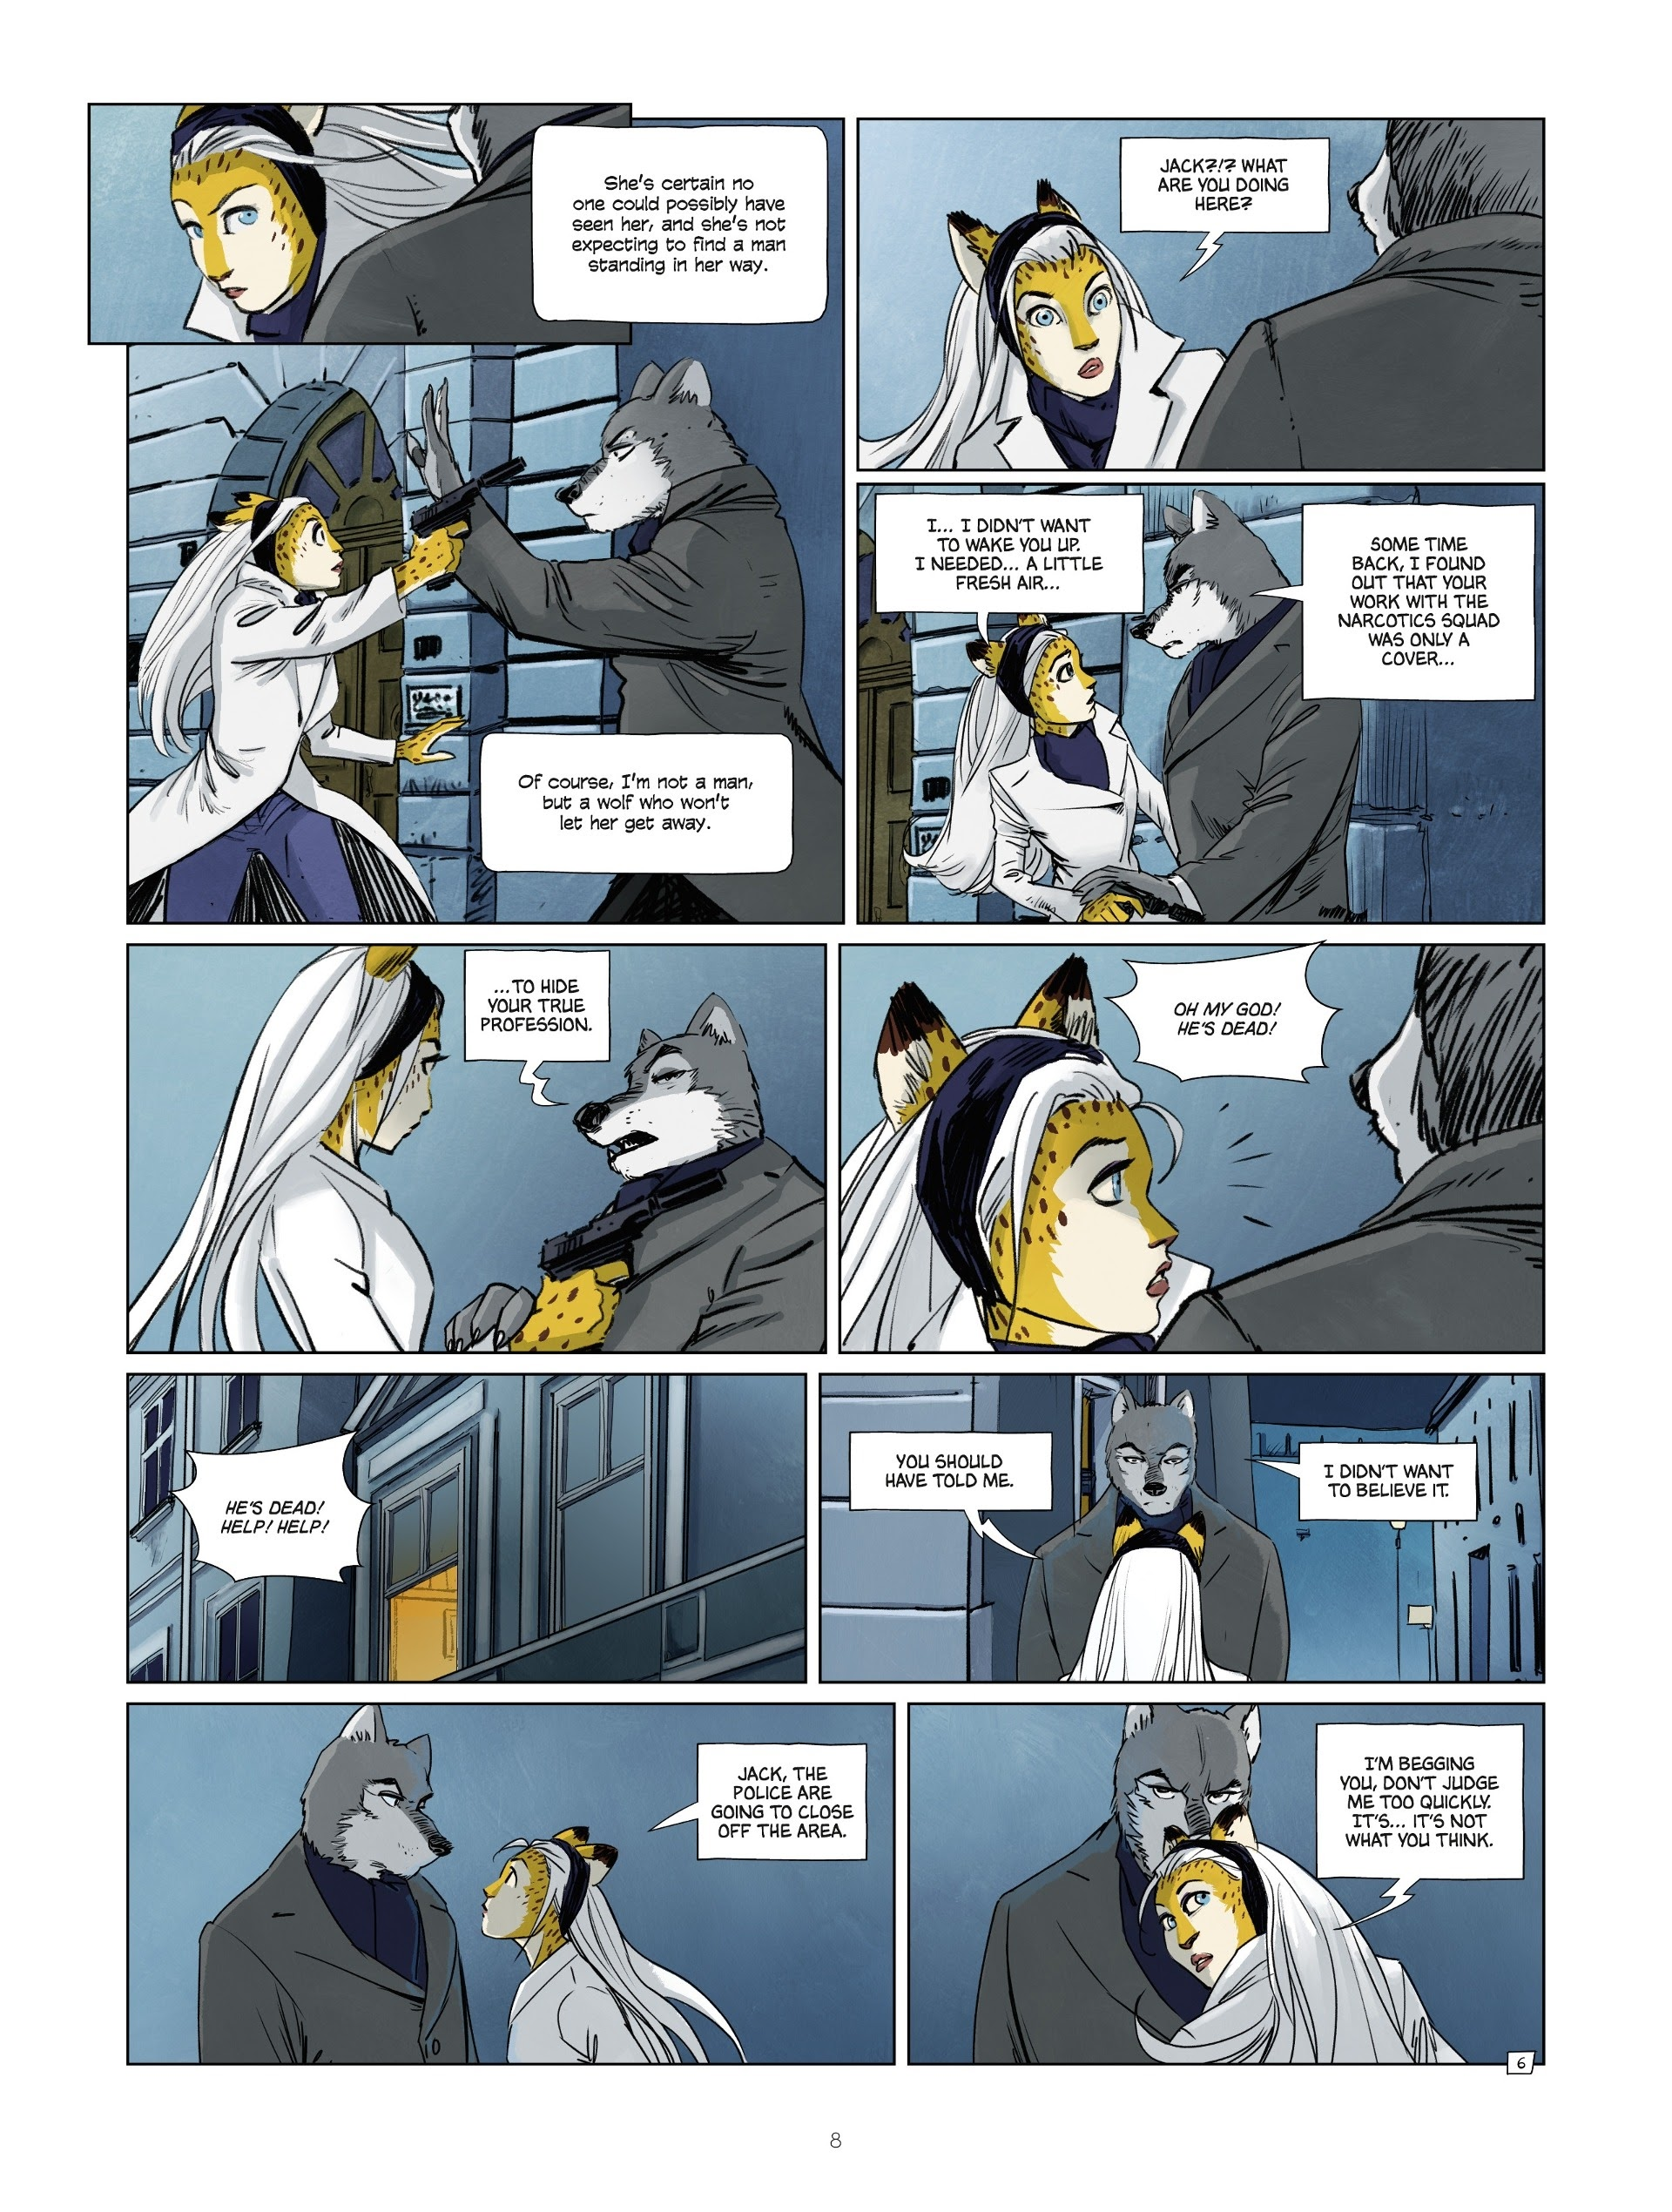 Read online Jack Wolfgang comic -  Issue #3 - 10